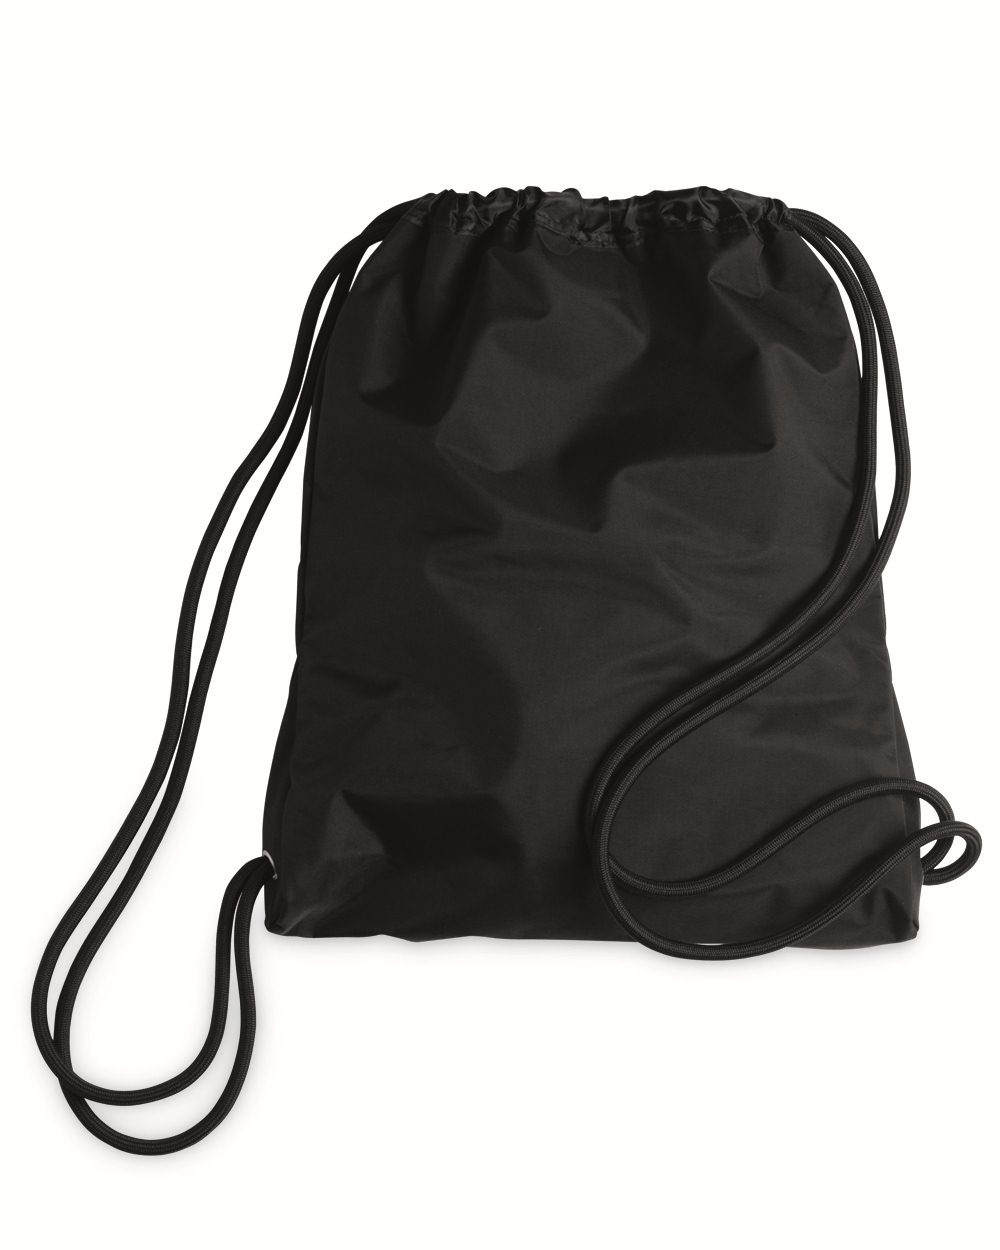 Liberty Bags 2256 - Microfiber Performance Drawstring Backpack